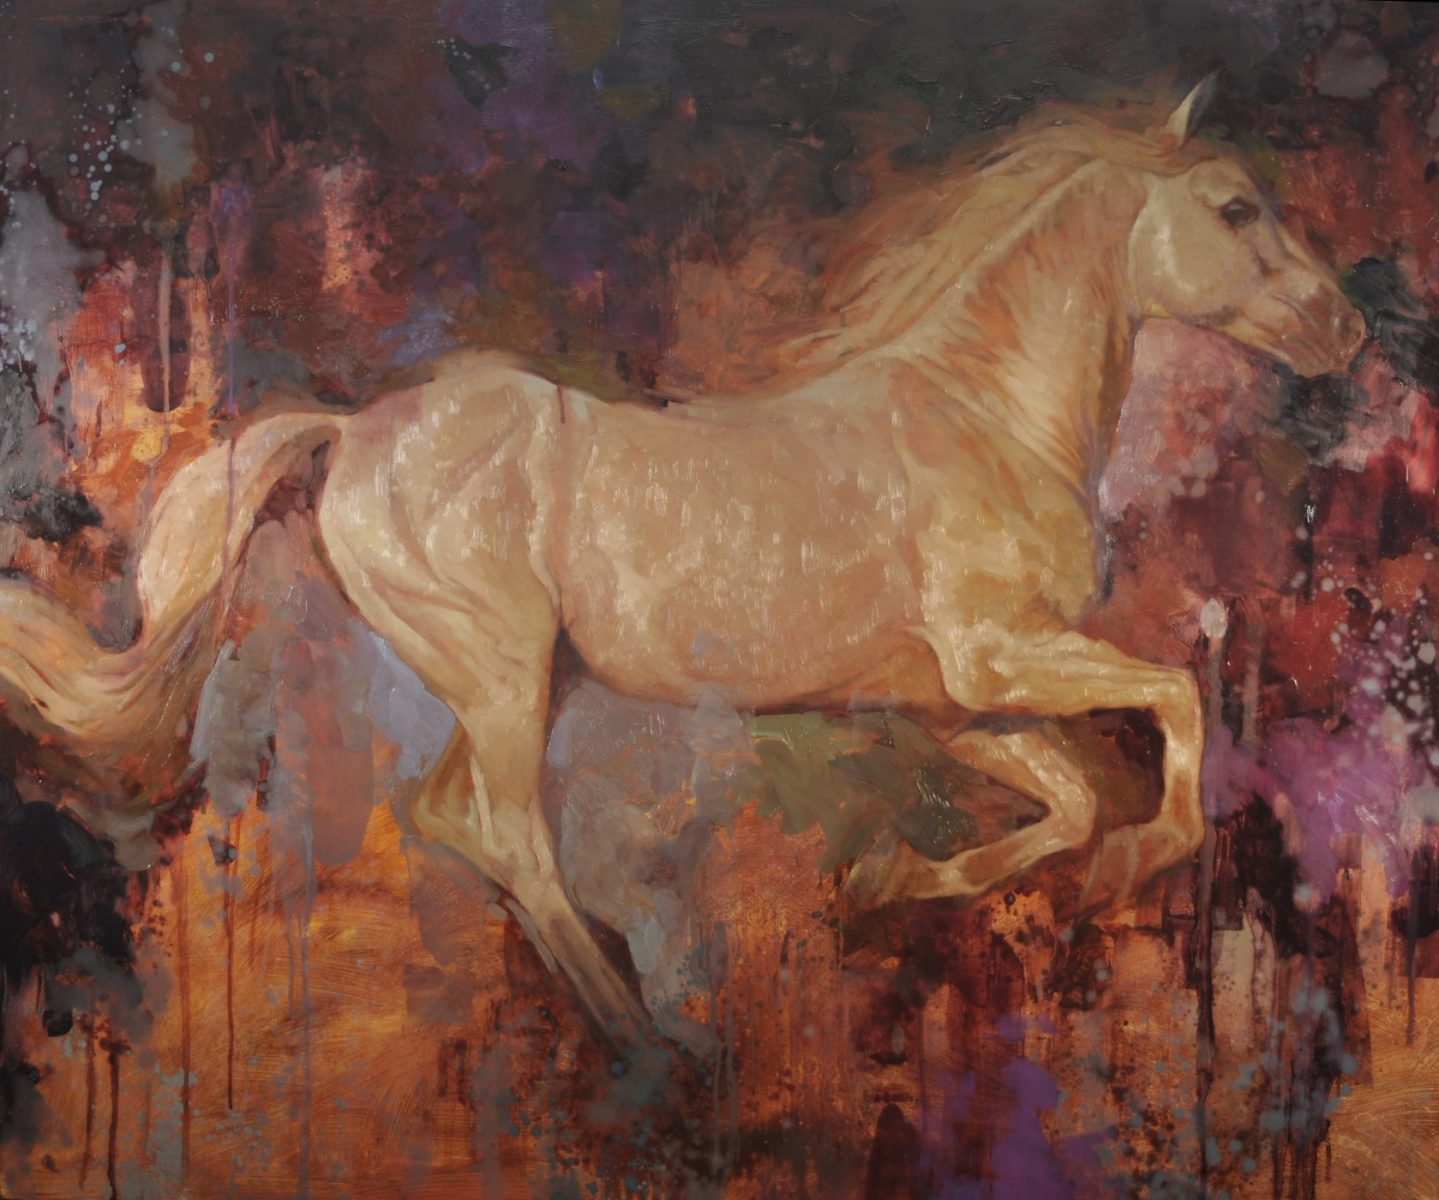 Fury painting of a horse by Joseph Lorusso